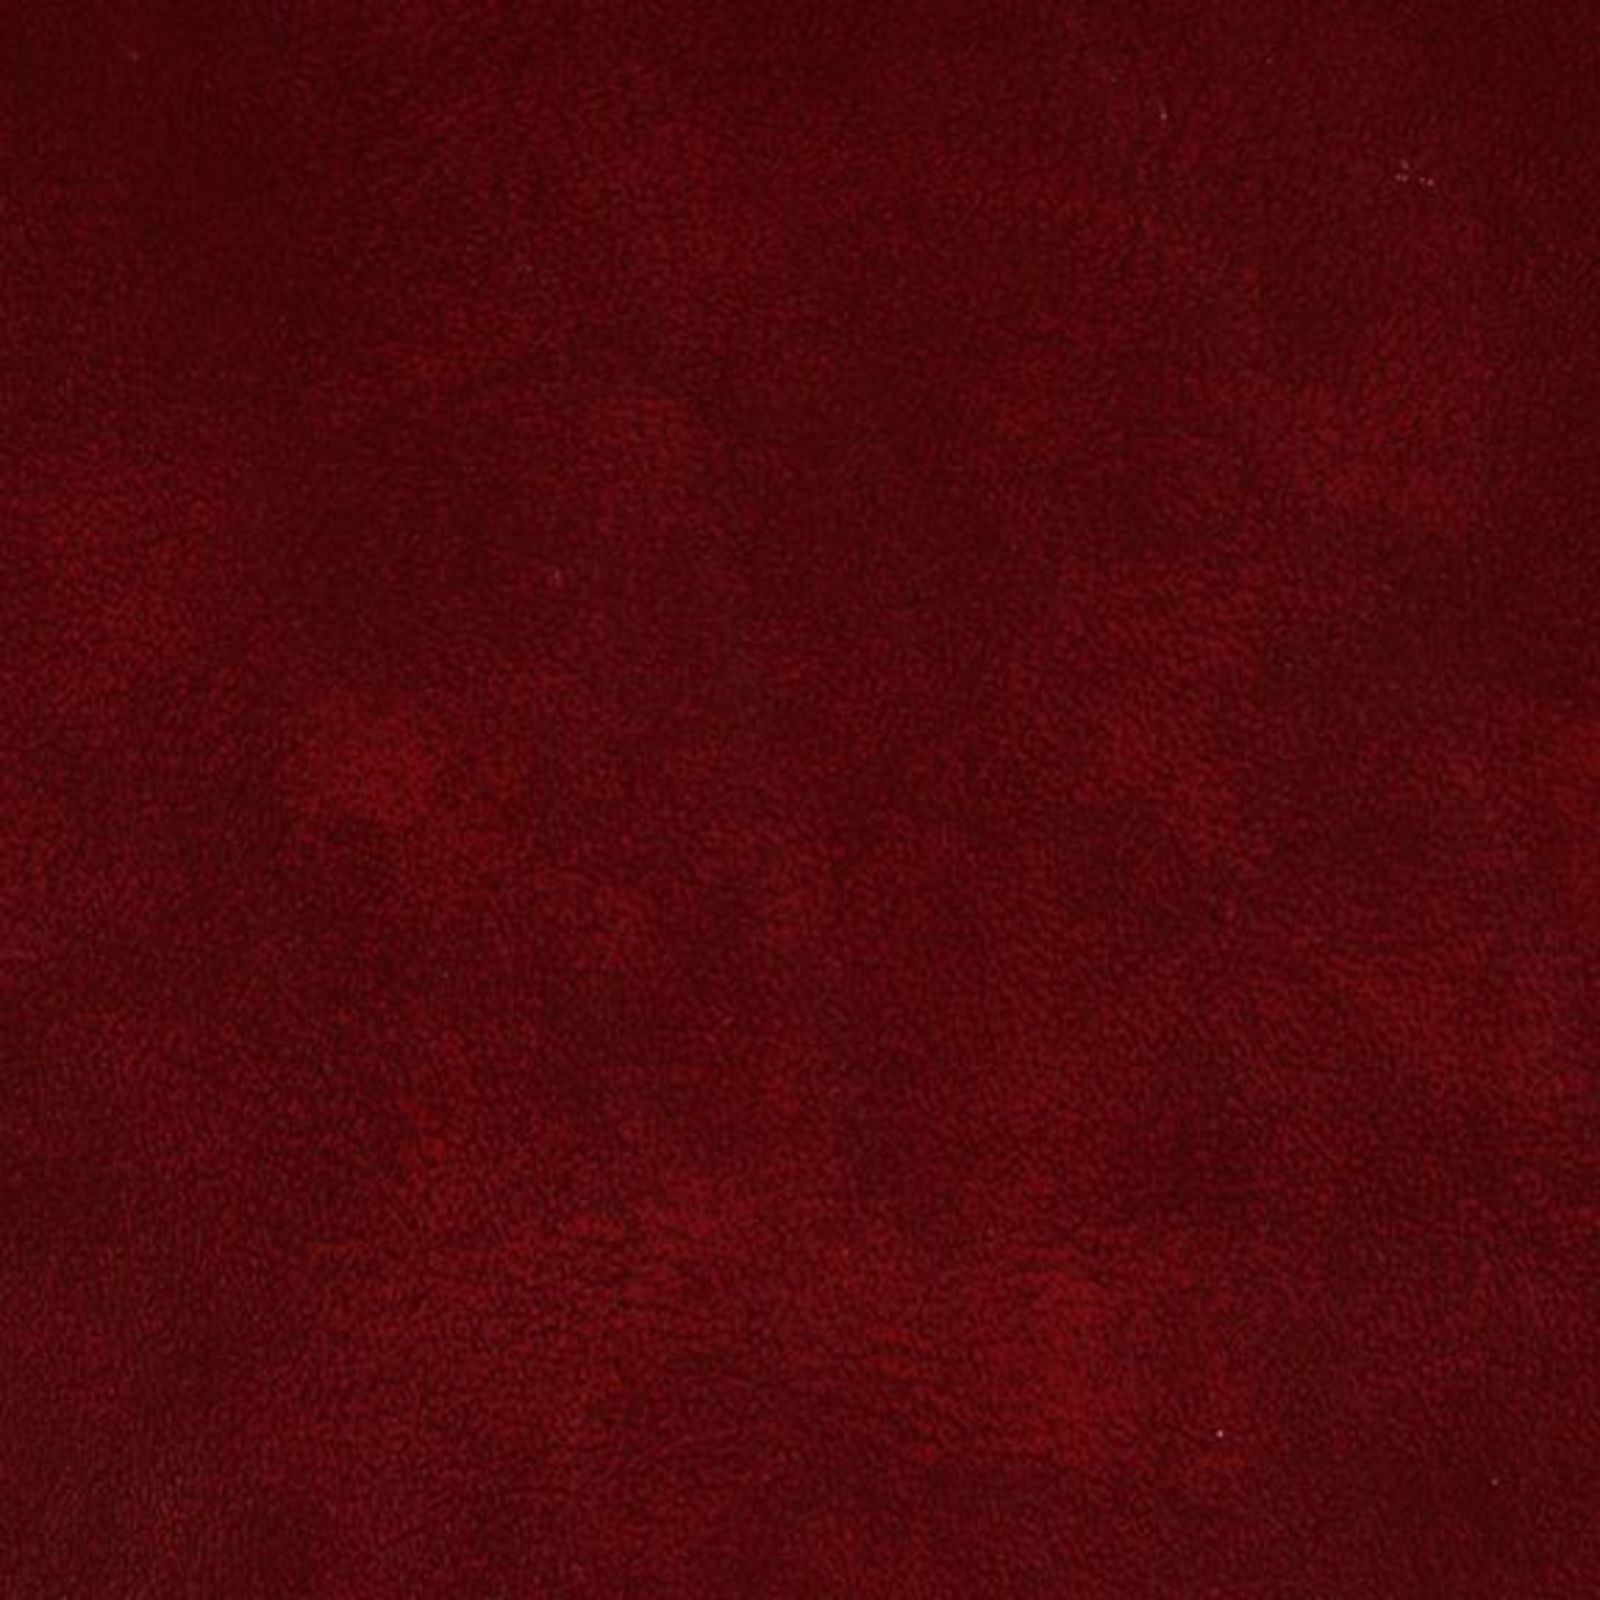 Yorktown Oxblood Red Solid Vinyl Upholstery Fabric